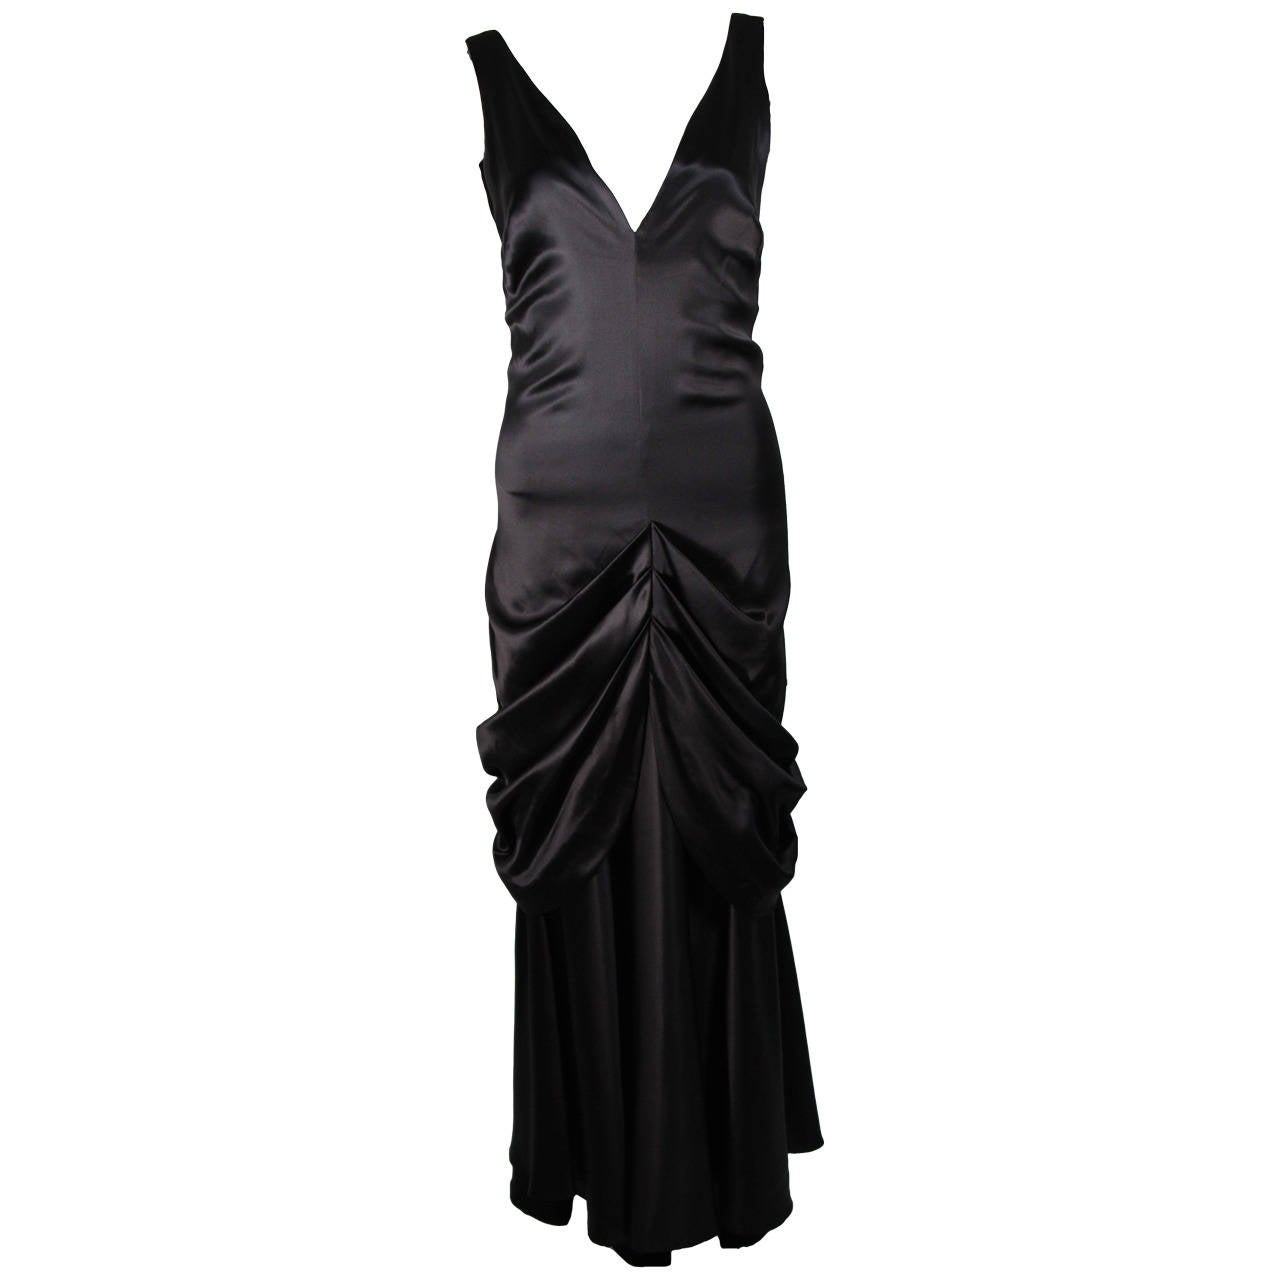 Ralph Lauren Black Silk Gown Size 12 For Sale at 1stdibs